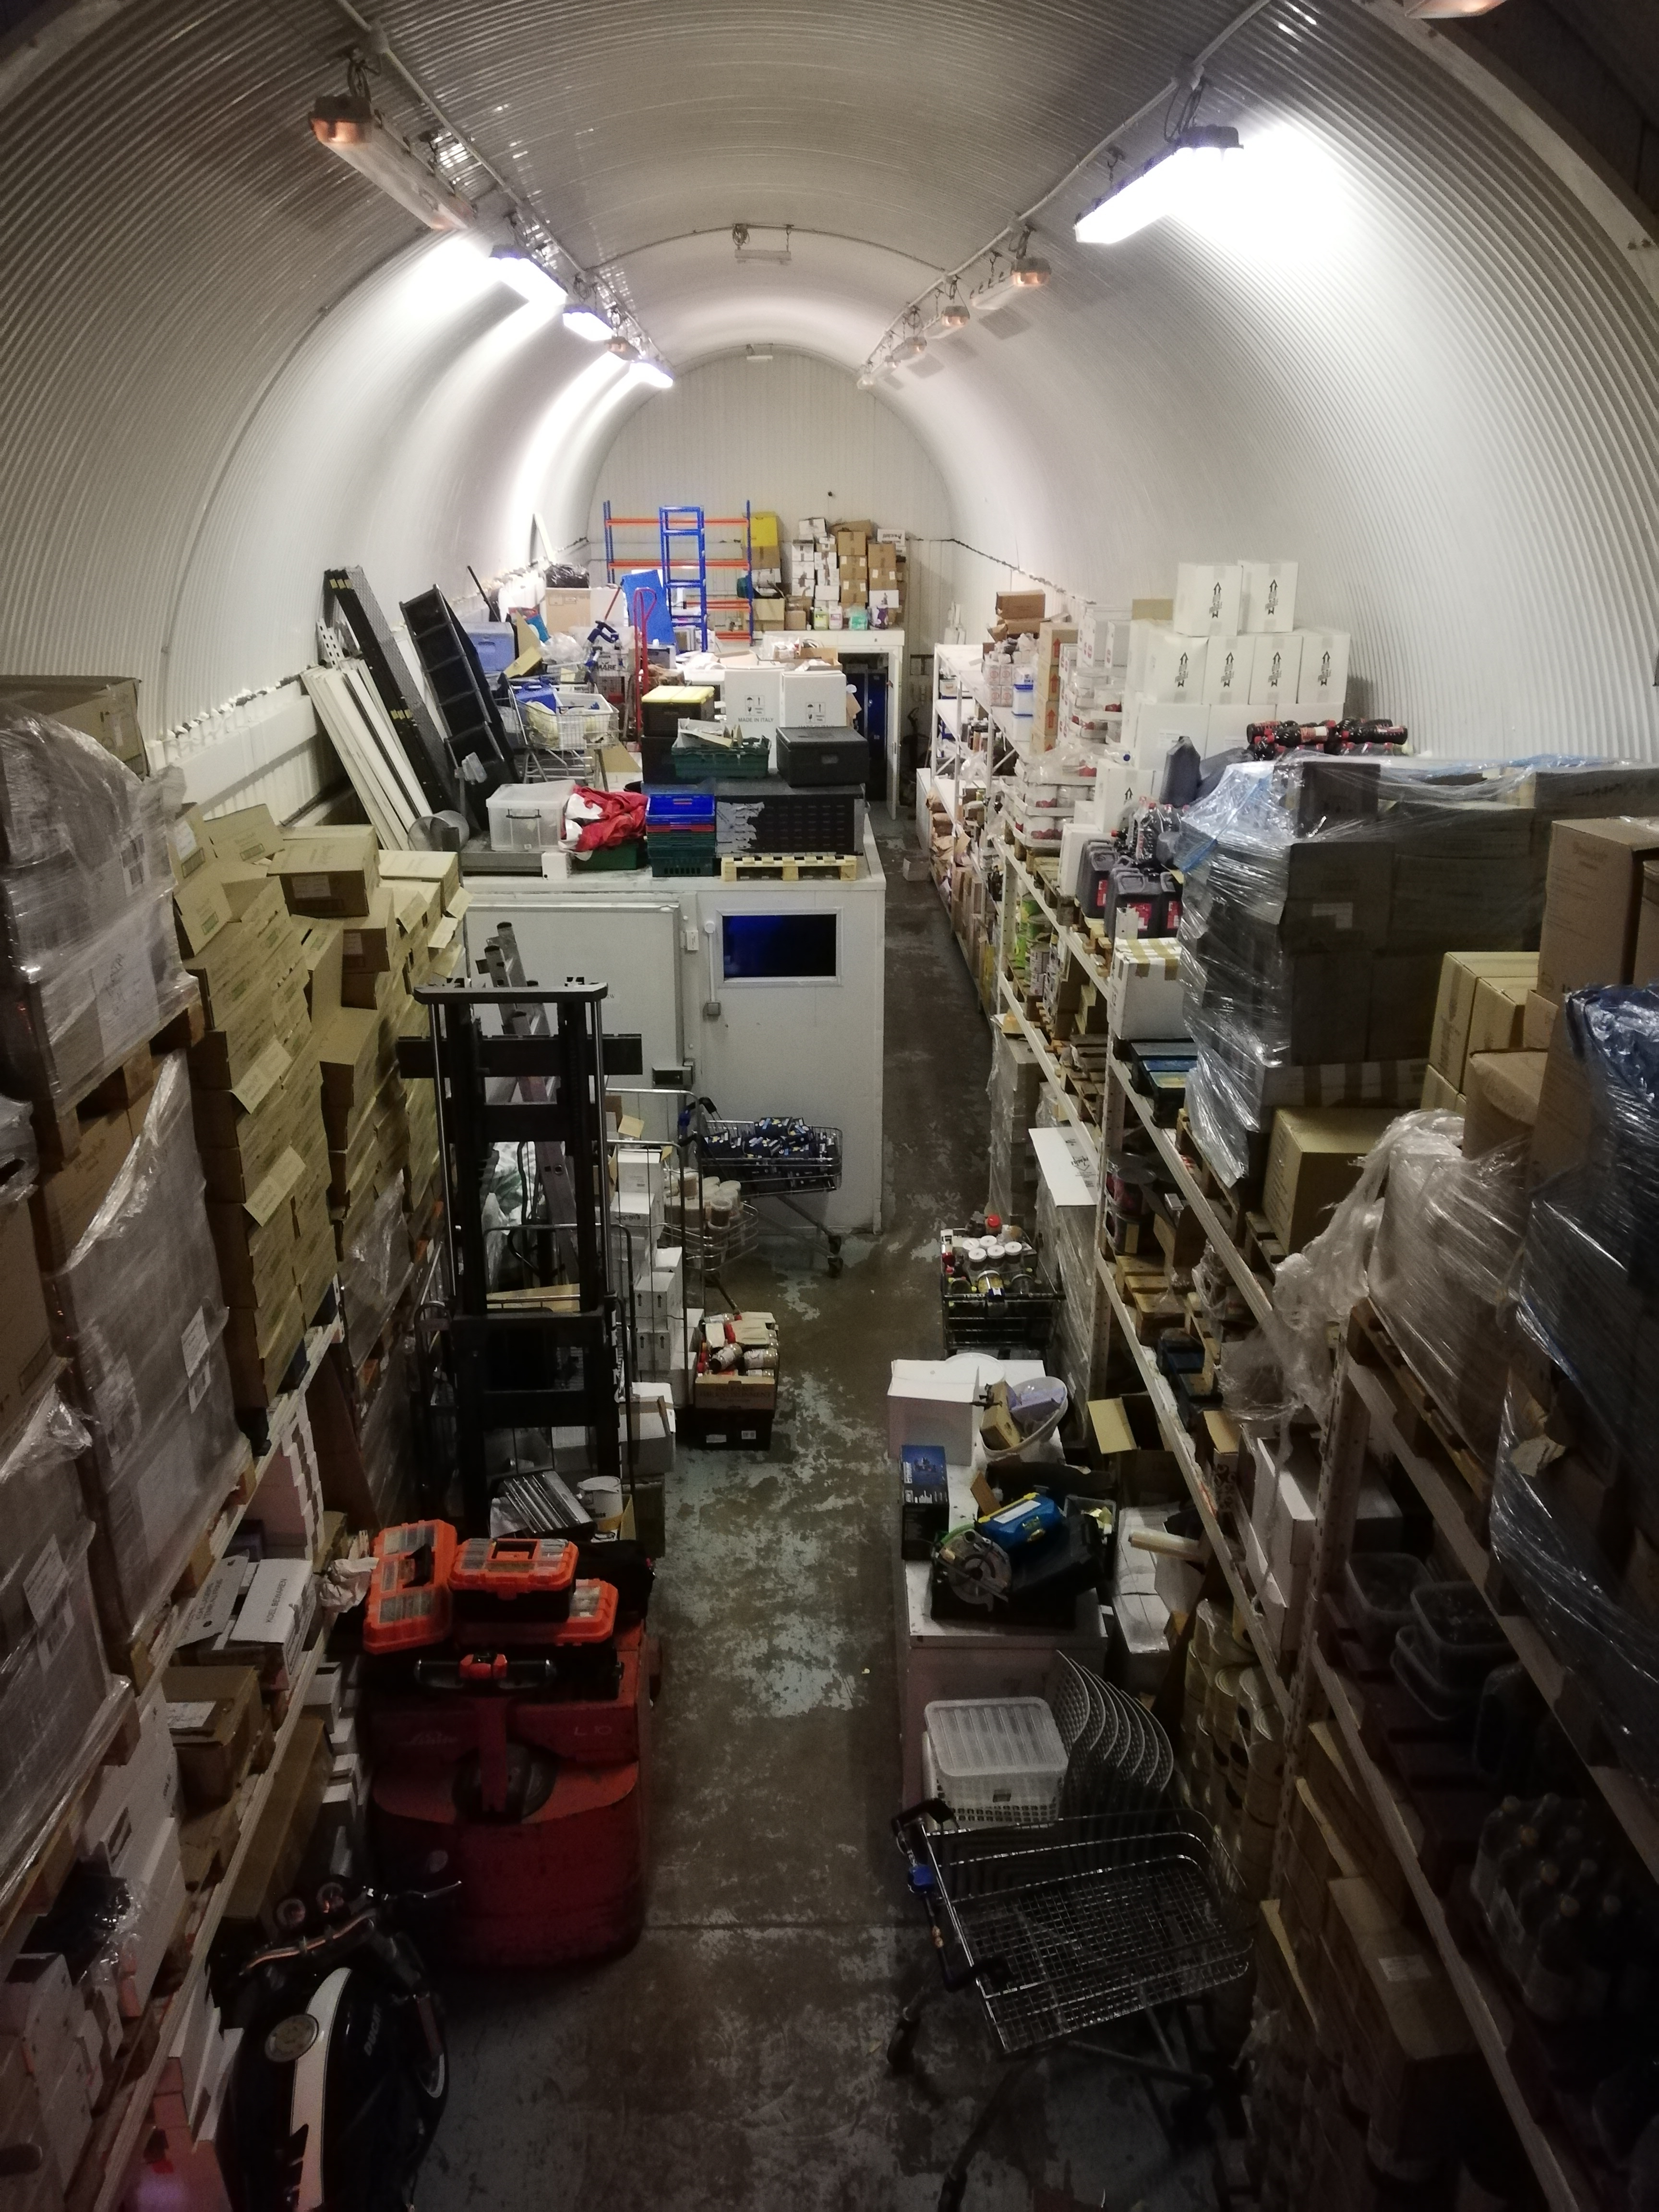 An authentic Italian food importer in South London (SE1)